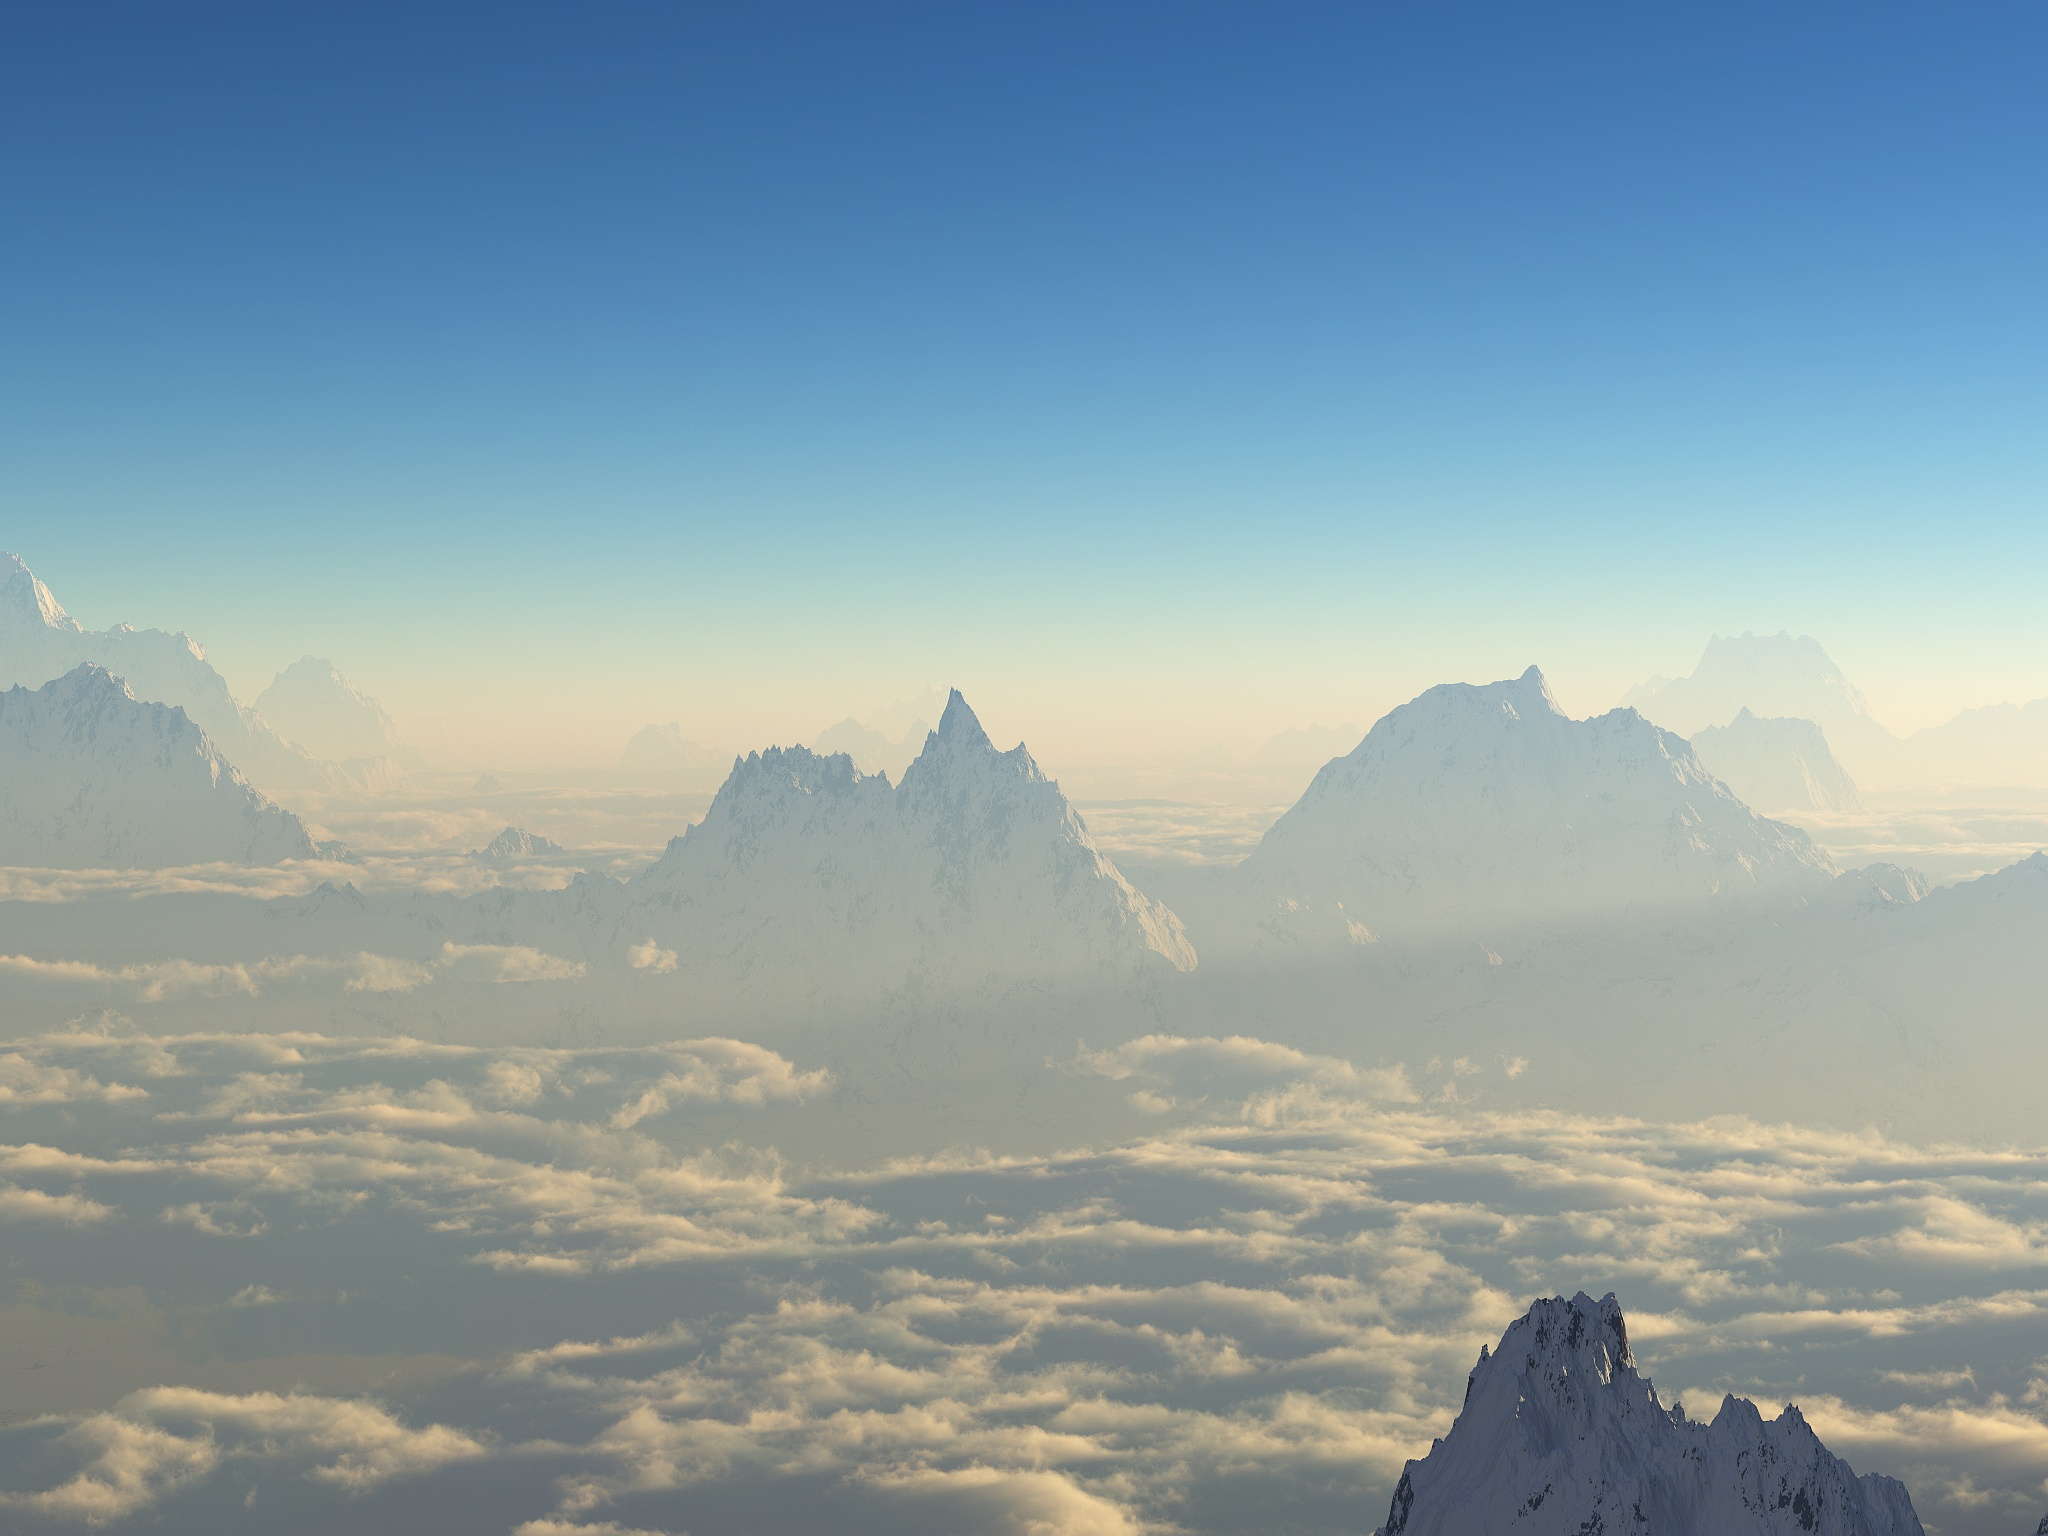 clouds_and_mountains_horizon_4_pp.jpg